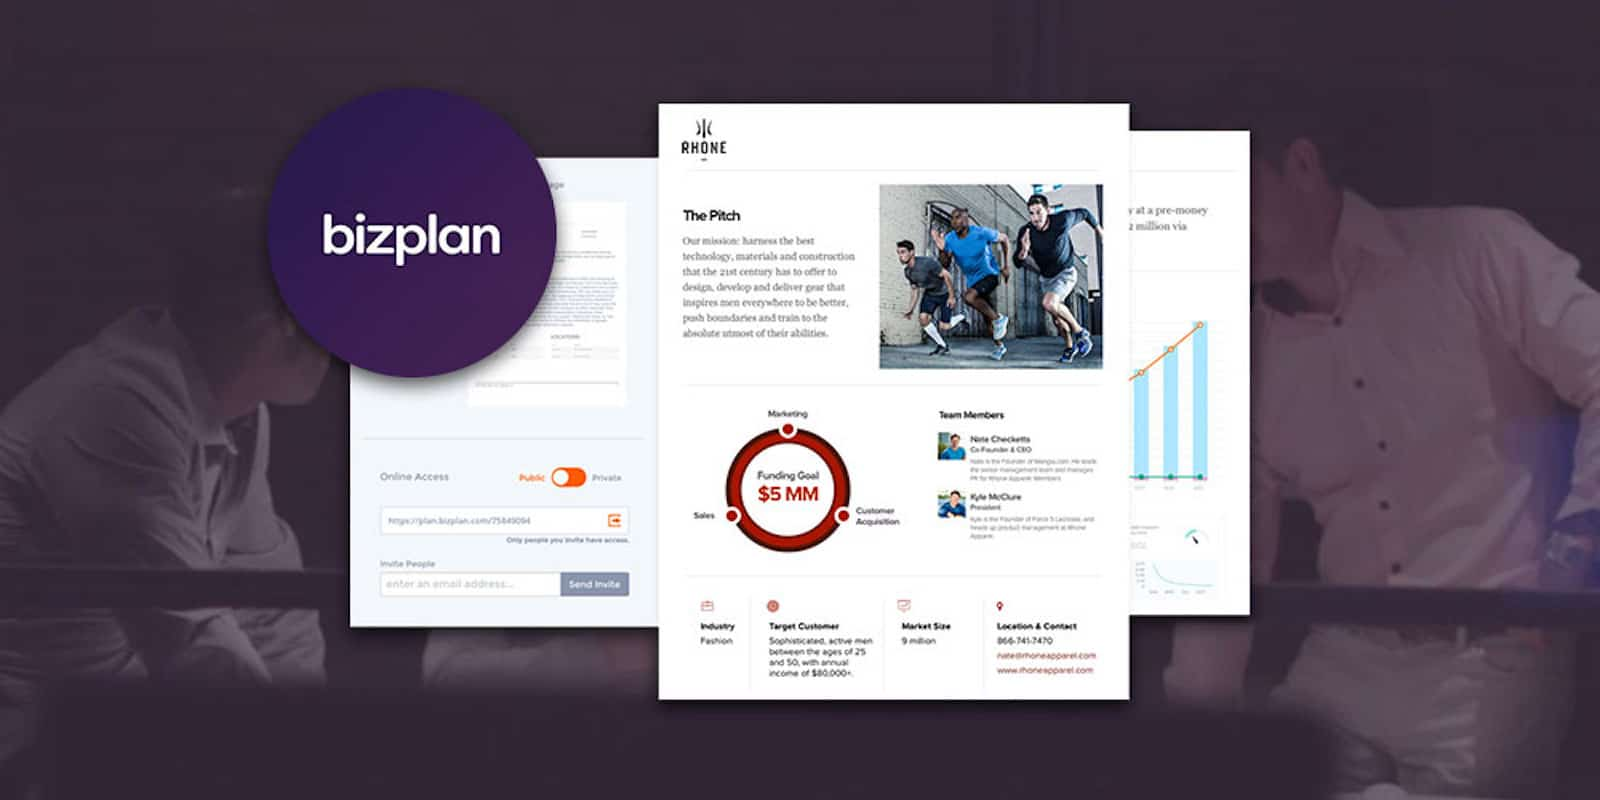 Bizplan is a simple, central tool for planning and launching your startup business idea.